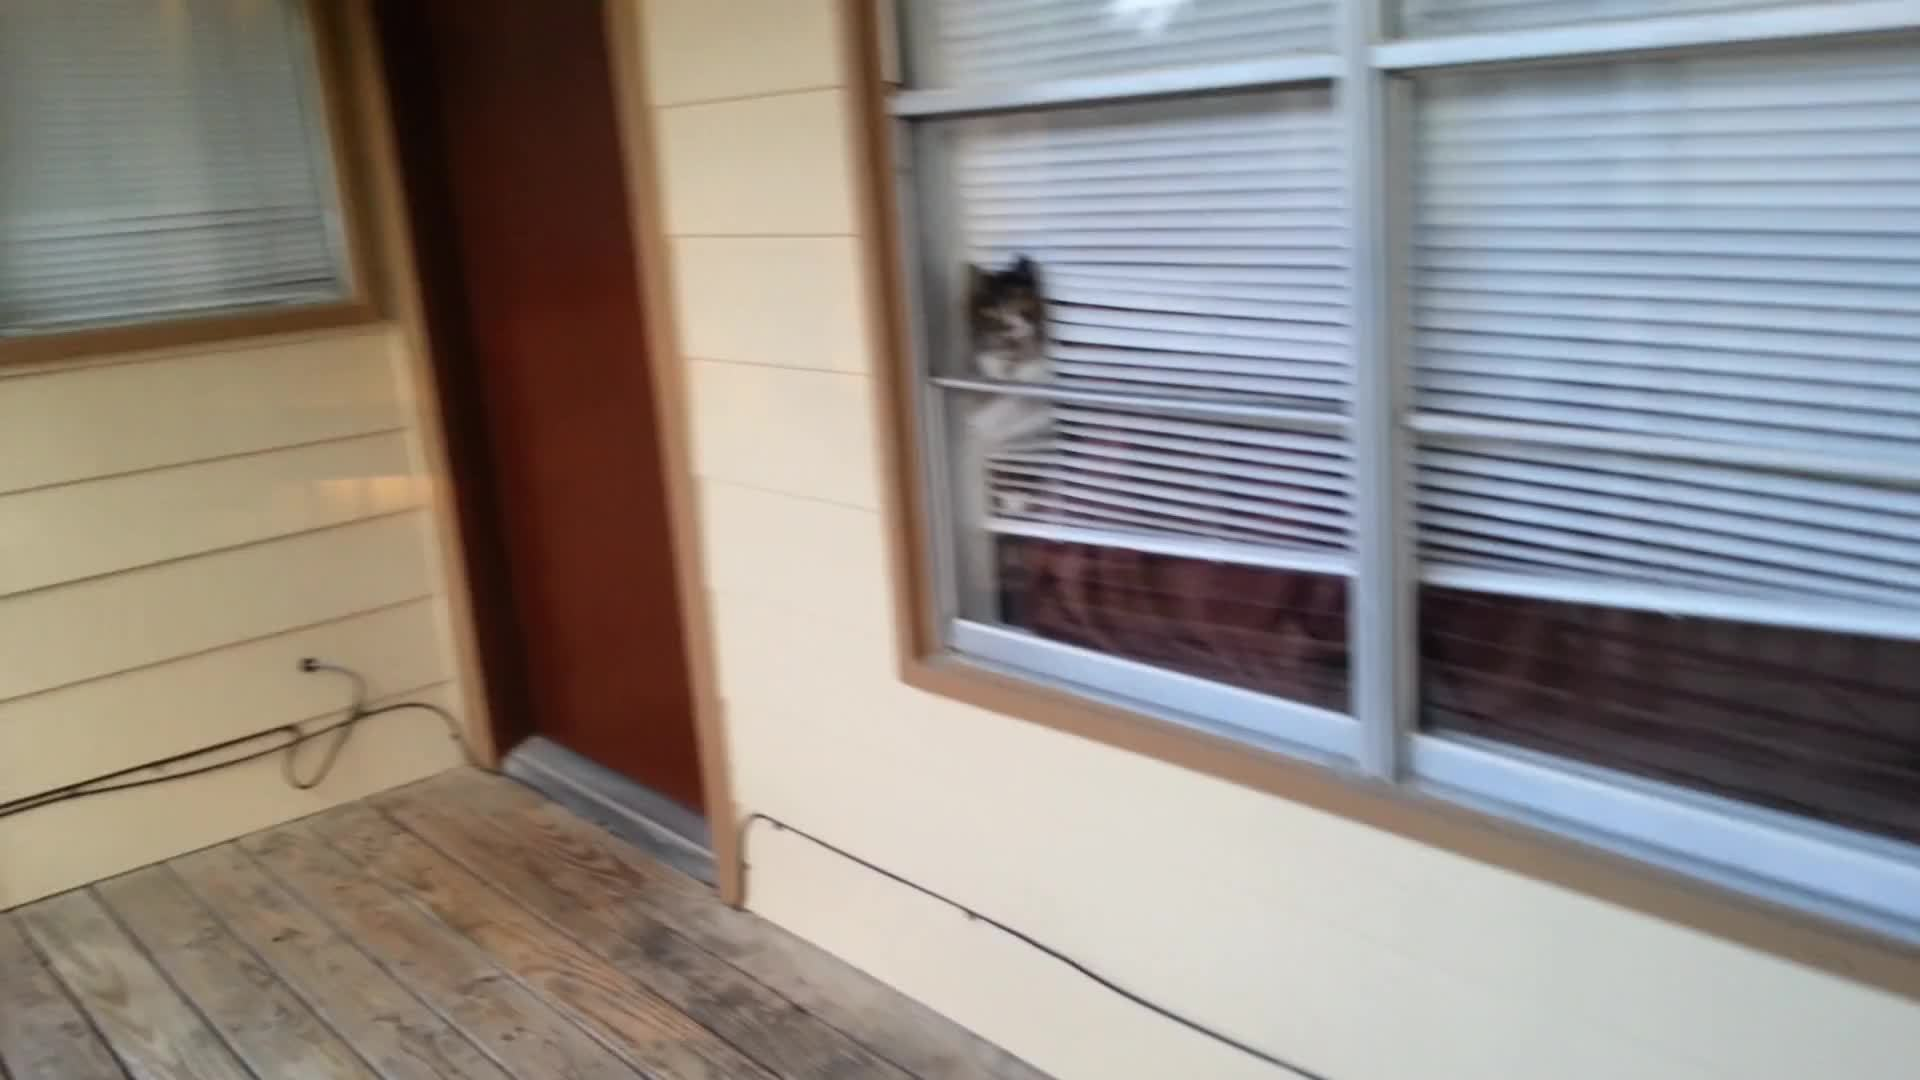 awwgifs, cats, How my cat greets me GIFs